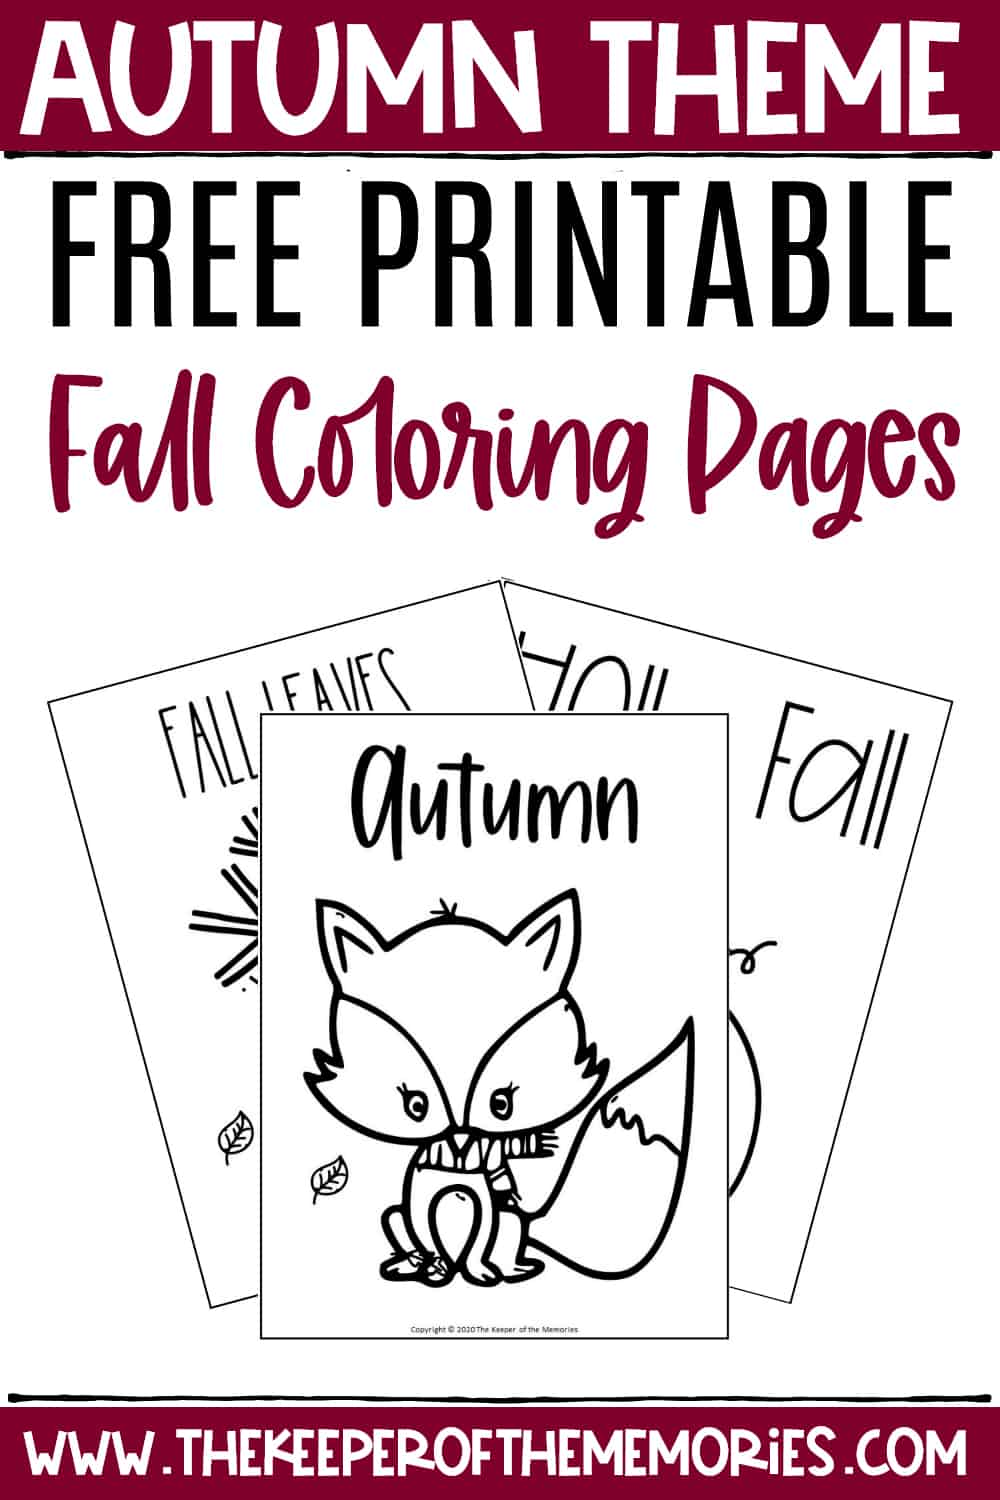 Free Printable Fall Coloring Pages The Keeper Of The Memories